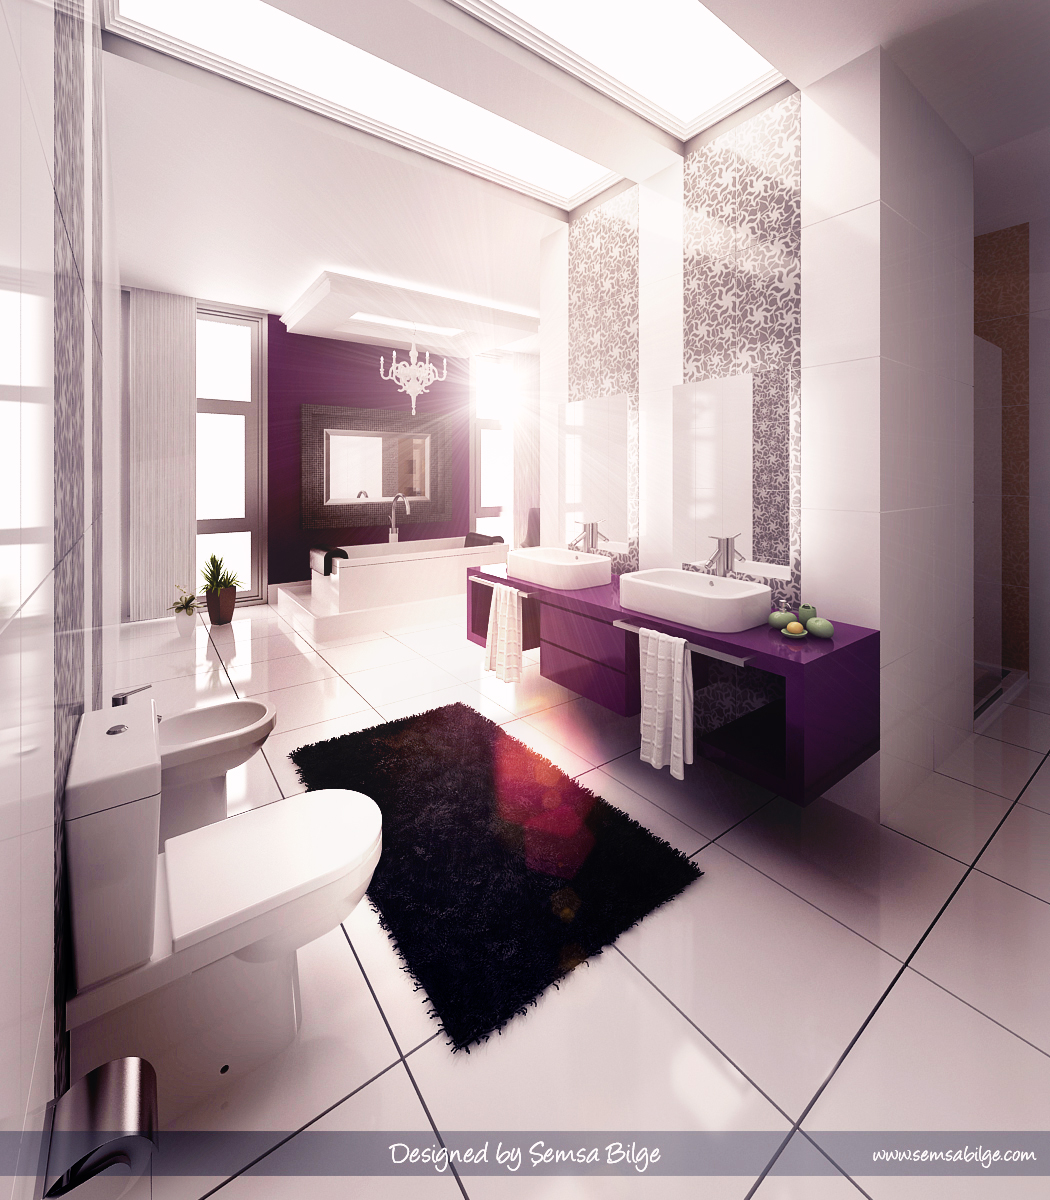 Beautiful bathroom designs ideas interior design interior decorating ideas interior design - Decoratie design toilet ...